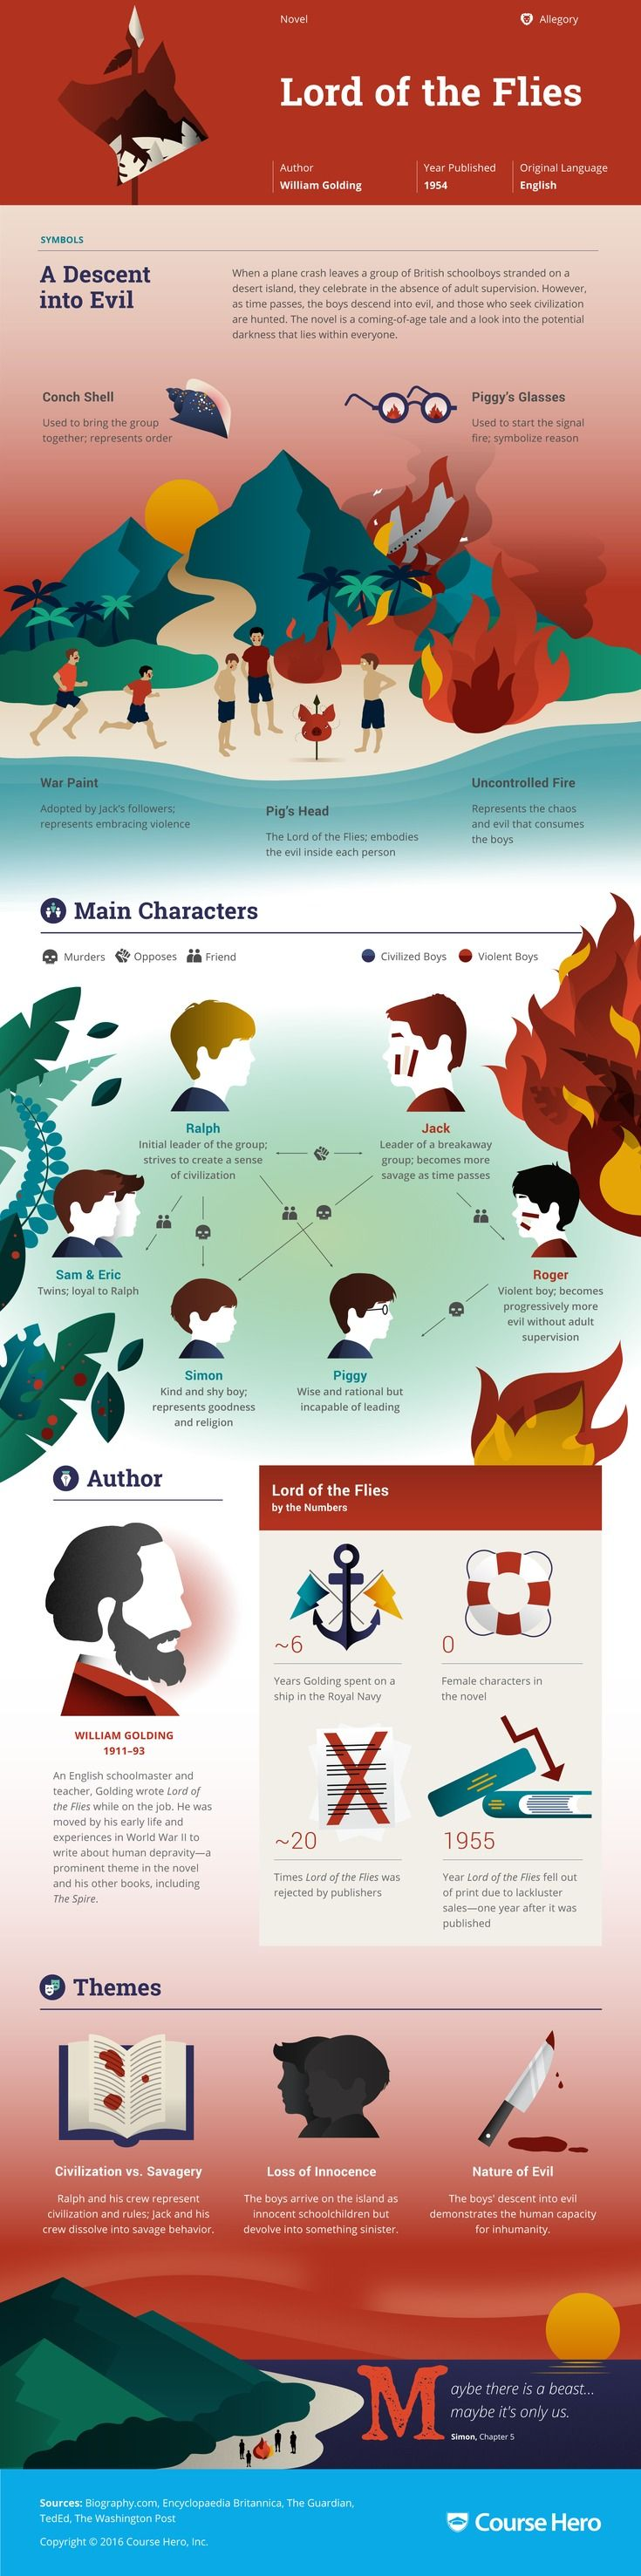 This @CourseHero infographic on Lord of the Flies is both visually stunning and informative!